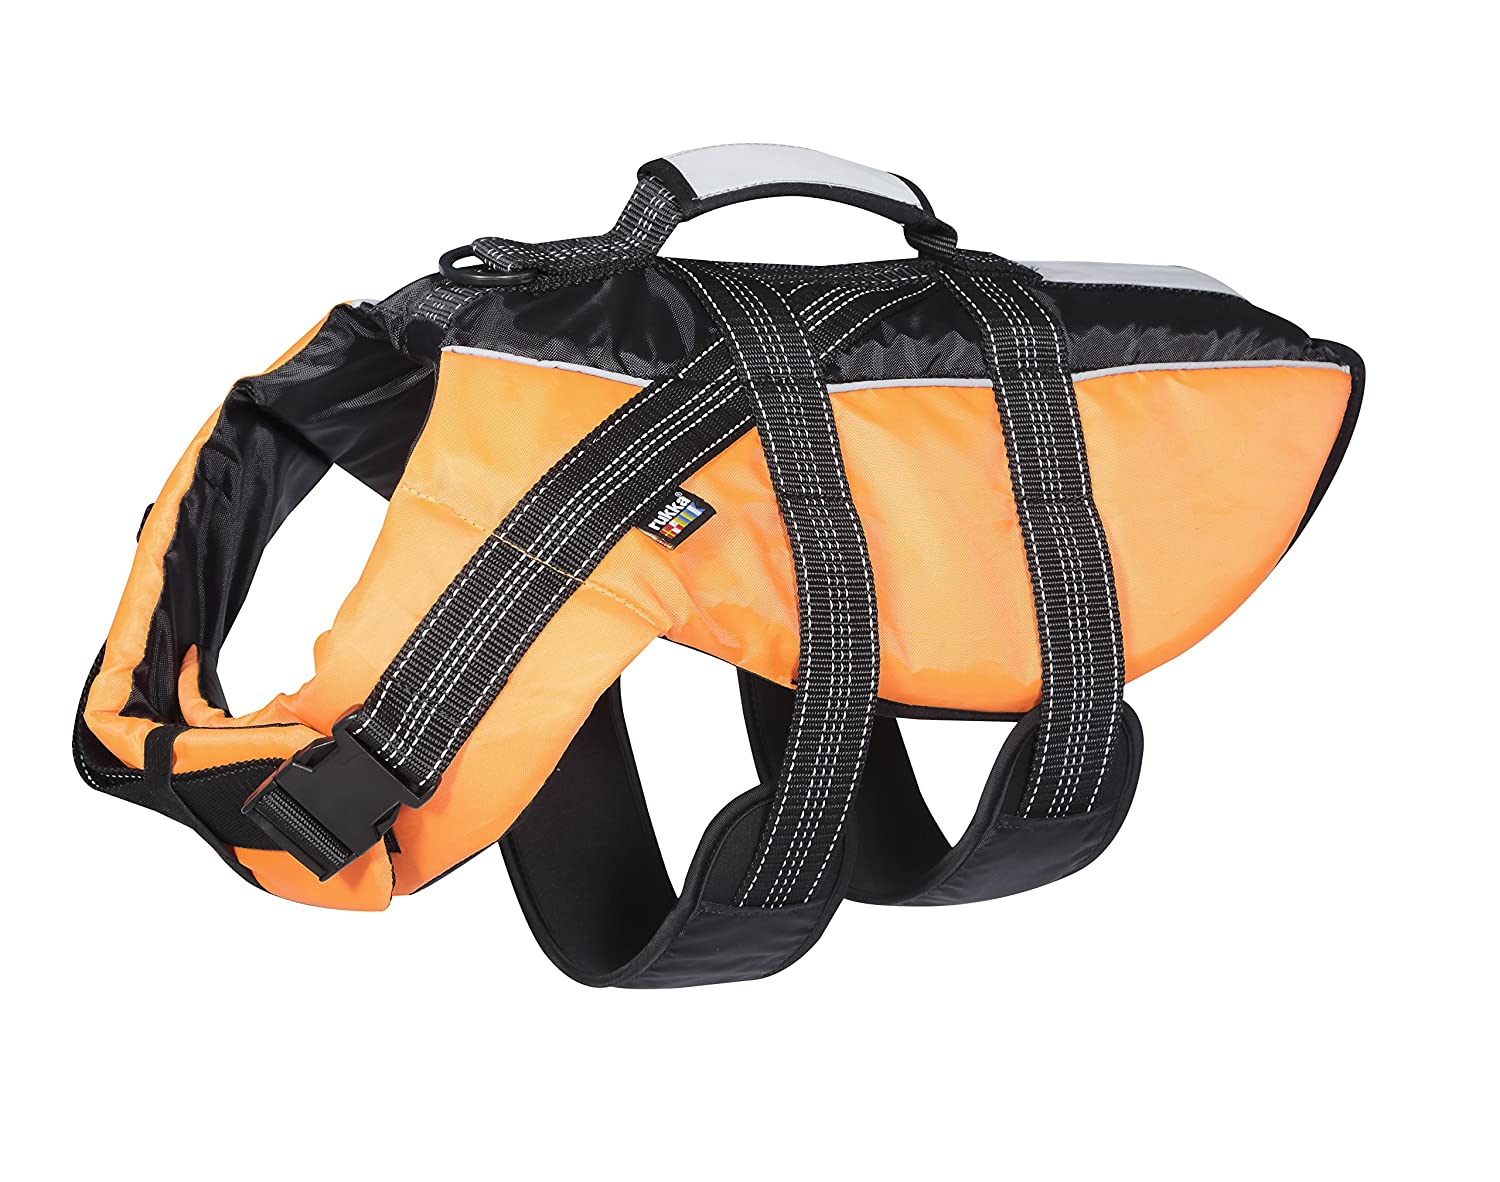 L Rukka Pets Safety Life Vest for Dogs (L 20-40 kg weight)